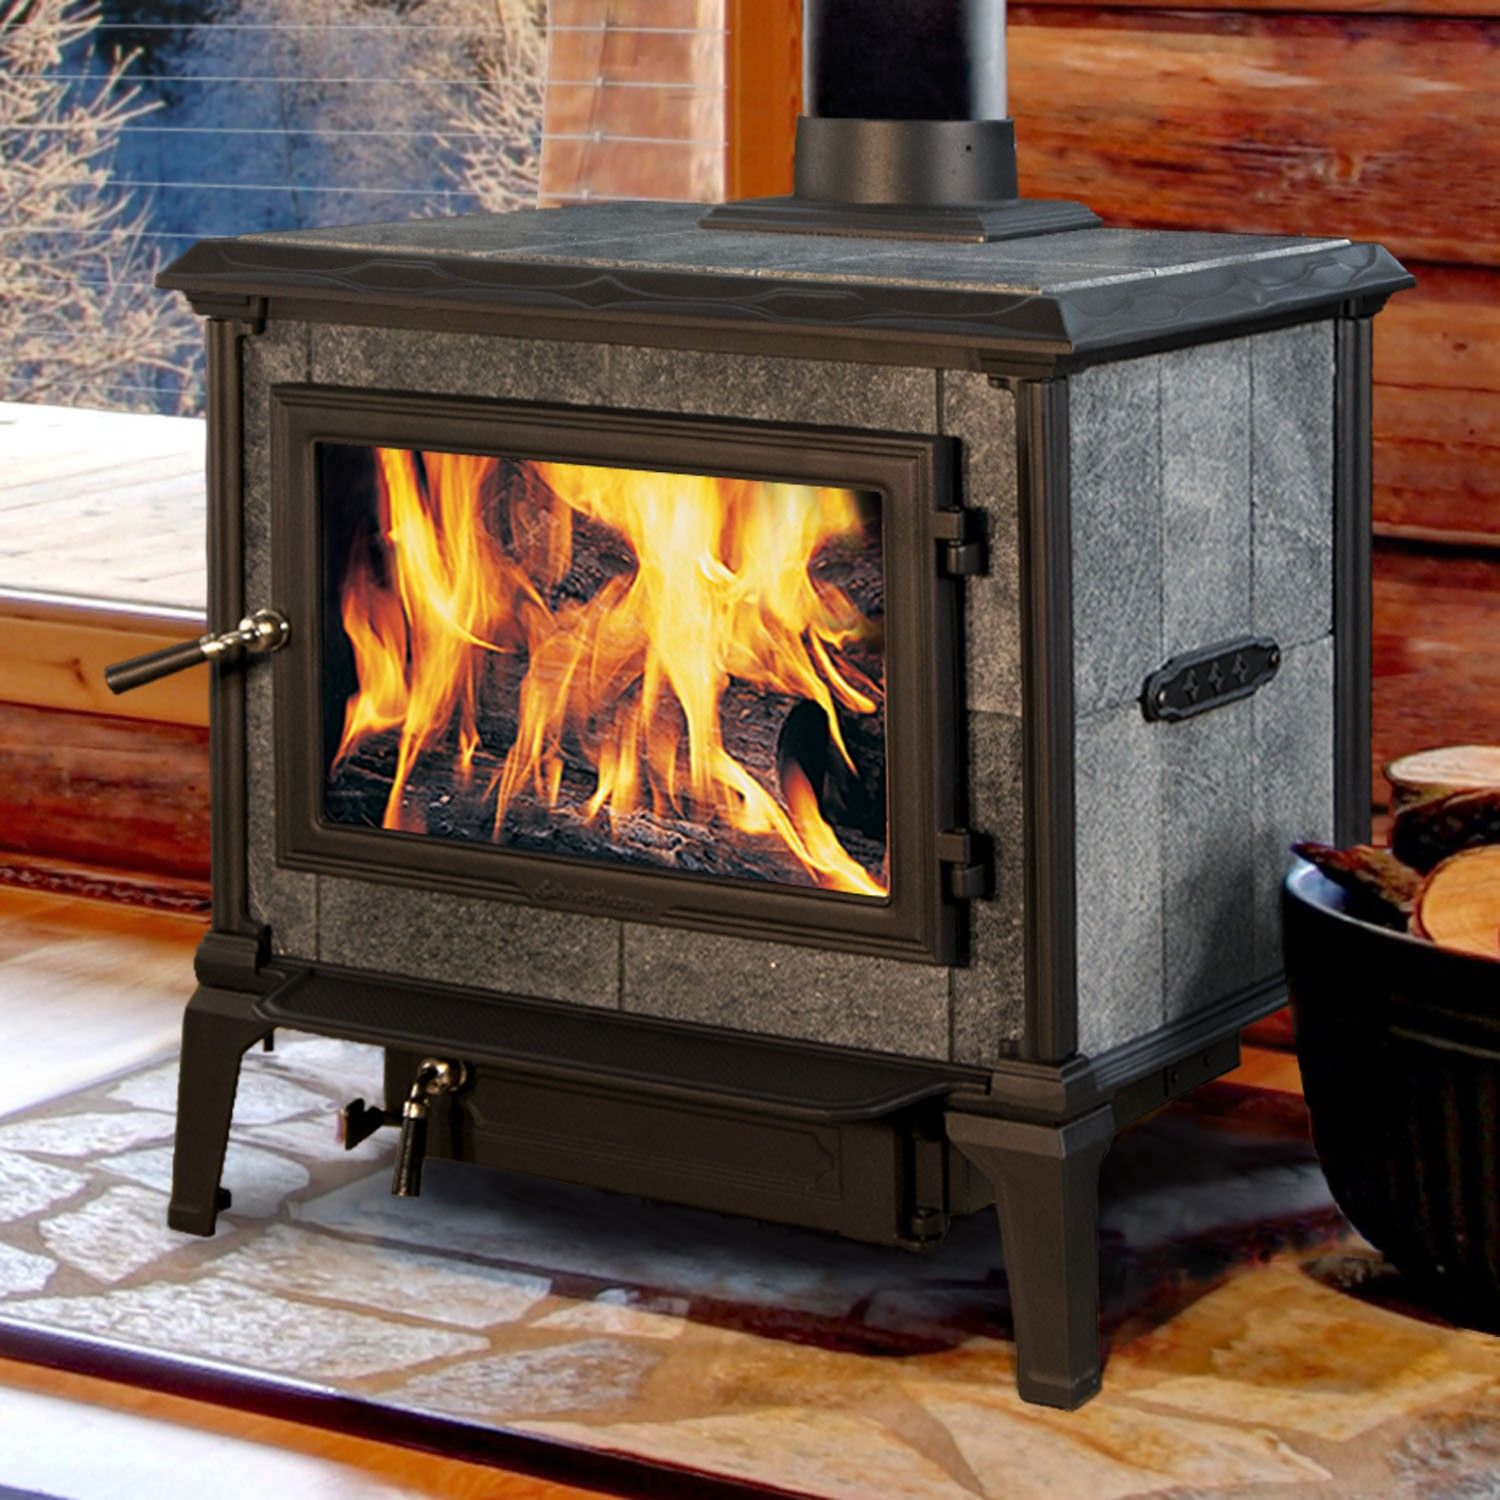 Soapstone Wood Stove, Wood Burning Stoves, Wood Stoves, Firewood,  Fireplaces, Steel Frame, Matte Black, Logs, Content - The Hearthstone Heritage Soapstone Wood Stove Is One Of The Most